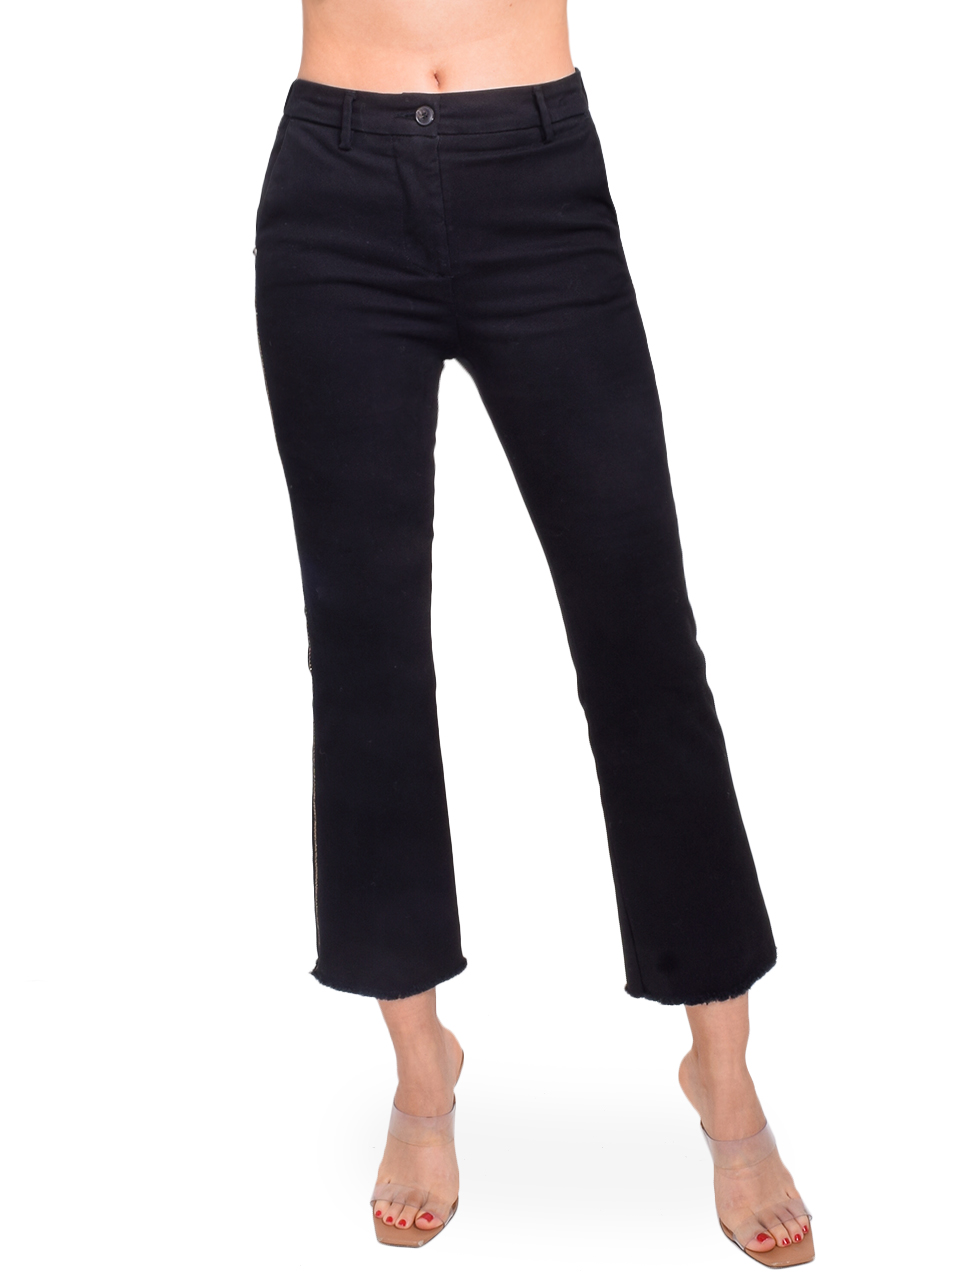 WHITE SAND Ava Jean in Black Front View X1https://cdn11.bigcommerce.com/s-3wu6n/products/33465/images/110645/64__86741.1602549955.244.365.jpg?c=2X2